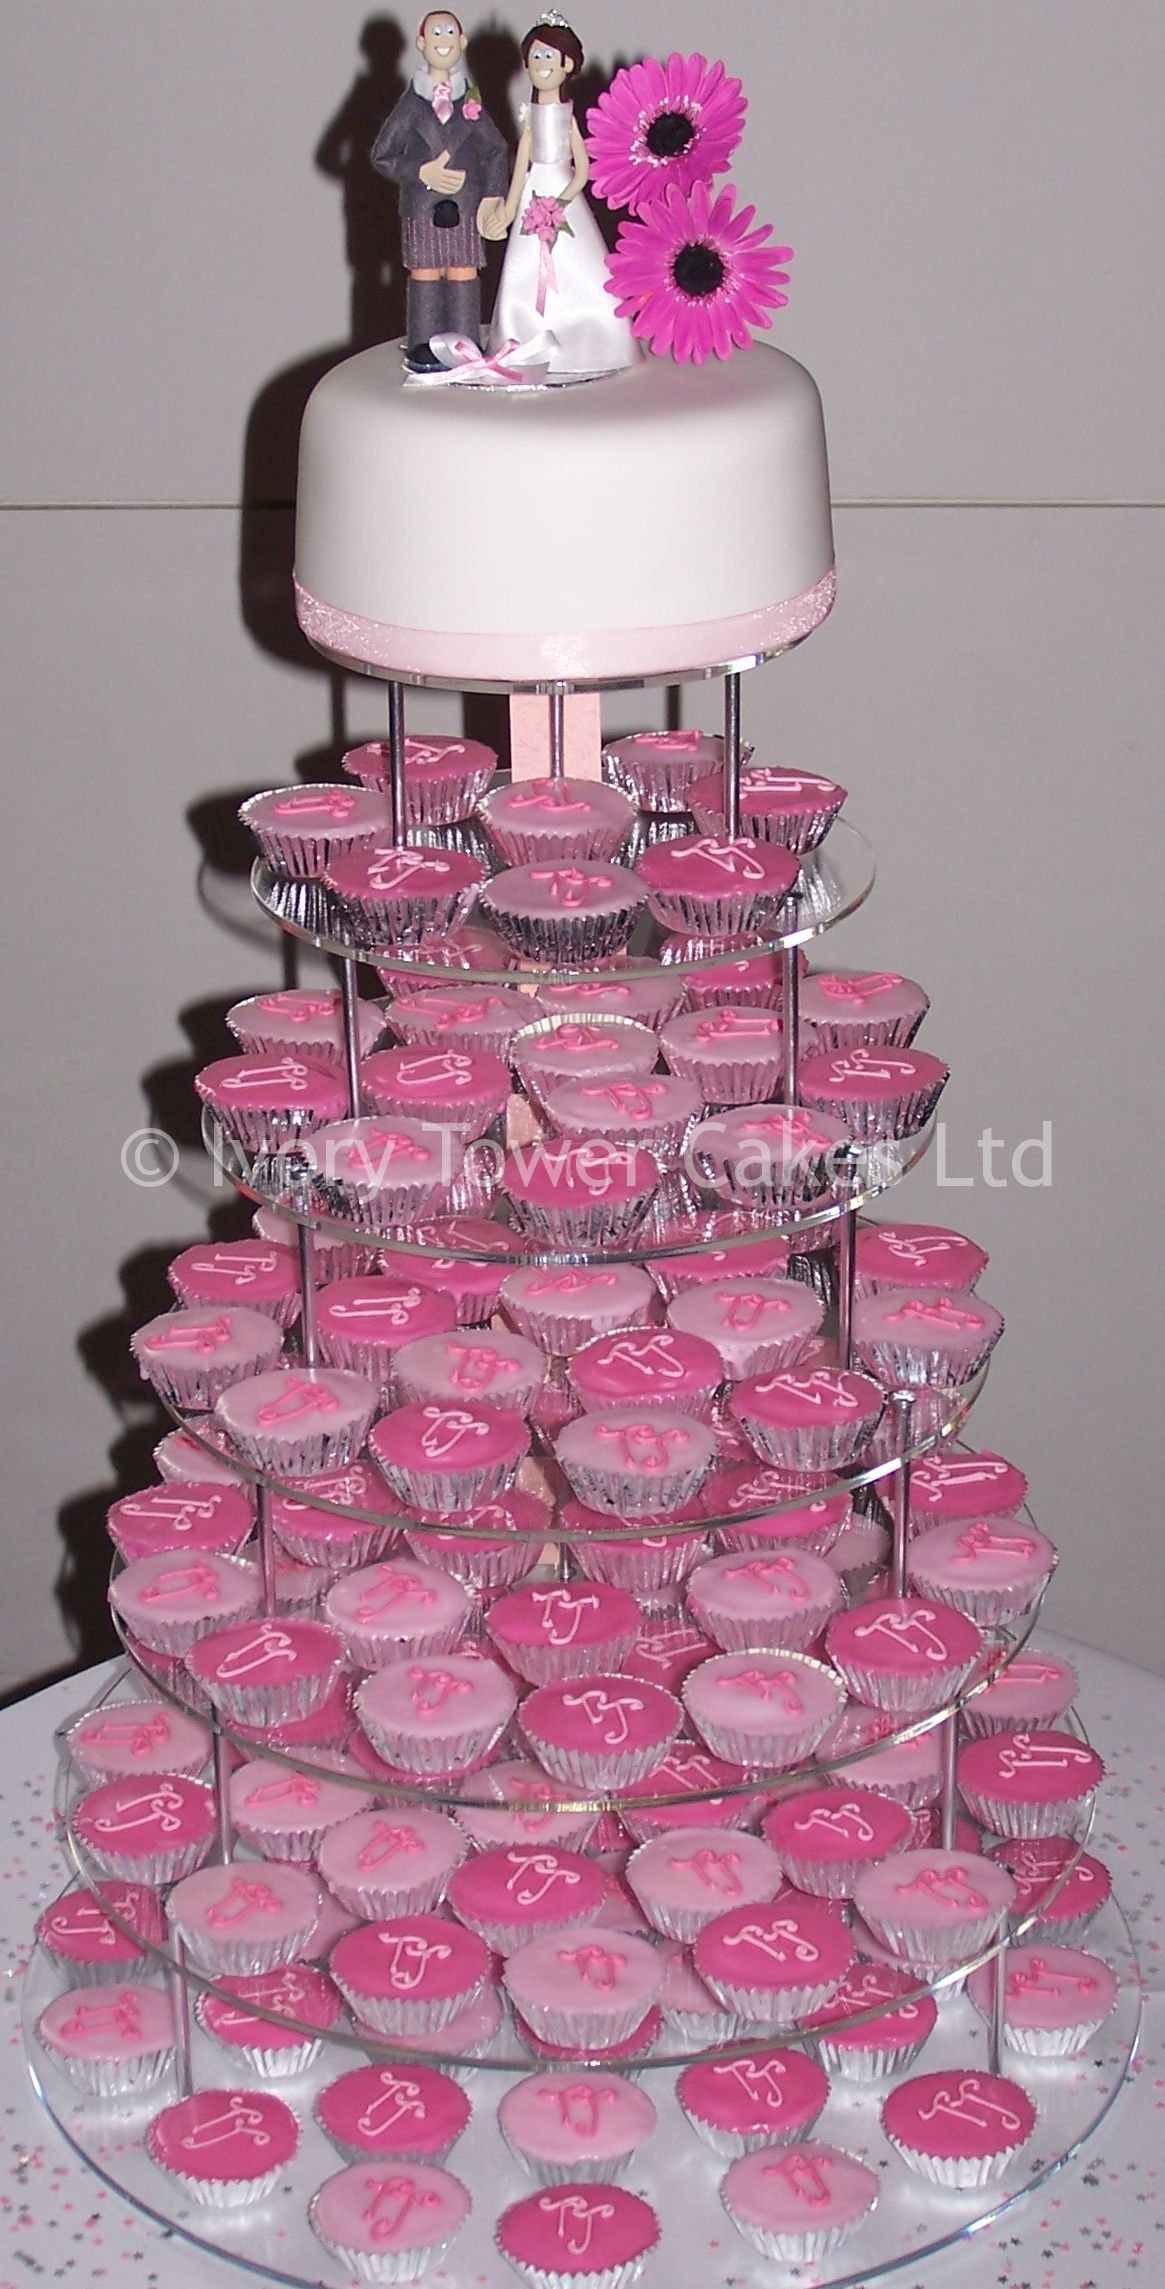 Wedding fondant cupcakes with sugar flowers by ivory tower cakes wedding fondant cupcakes with sugar flowers by ivory tower cakes junglespirit Gallery